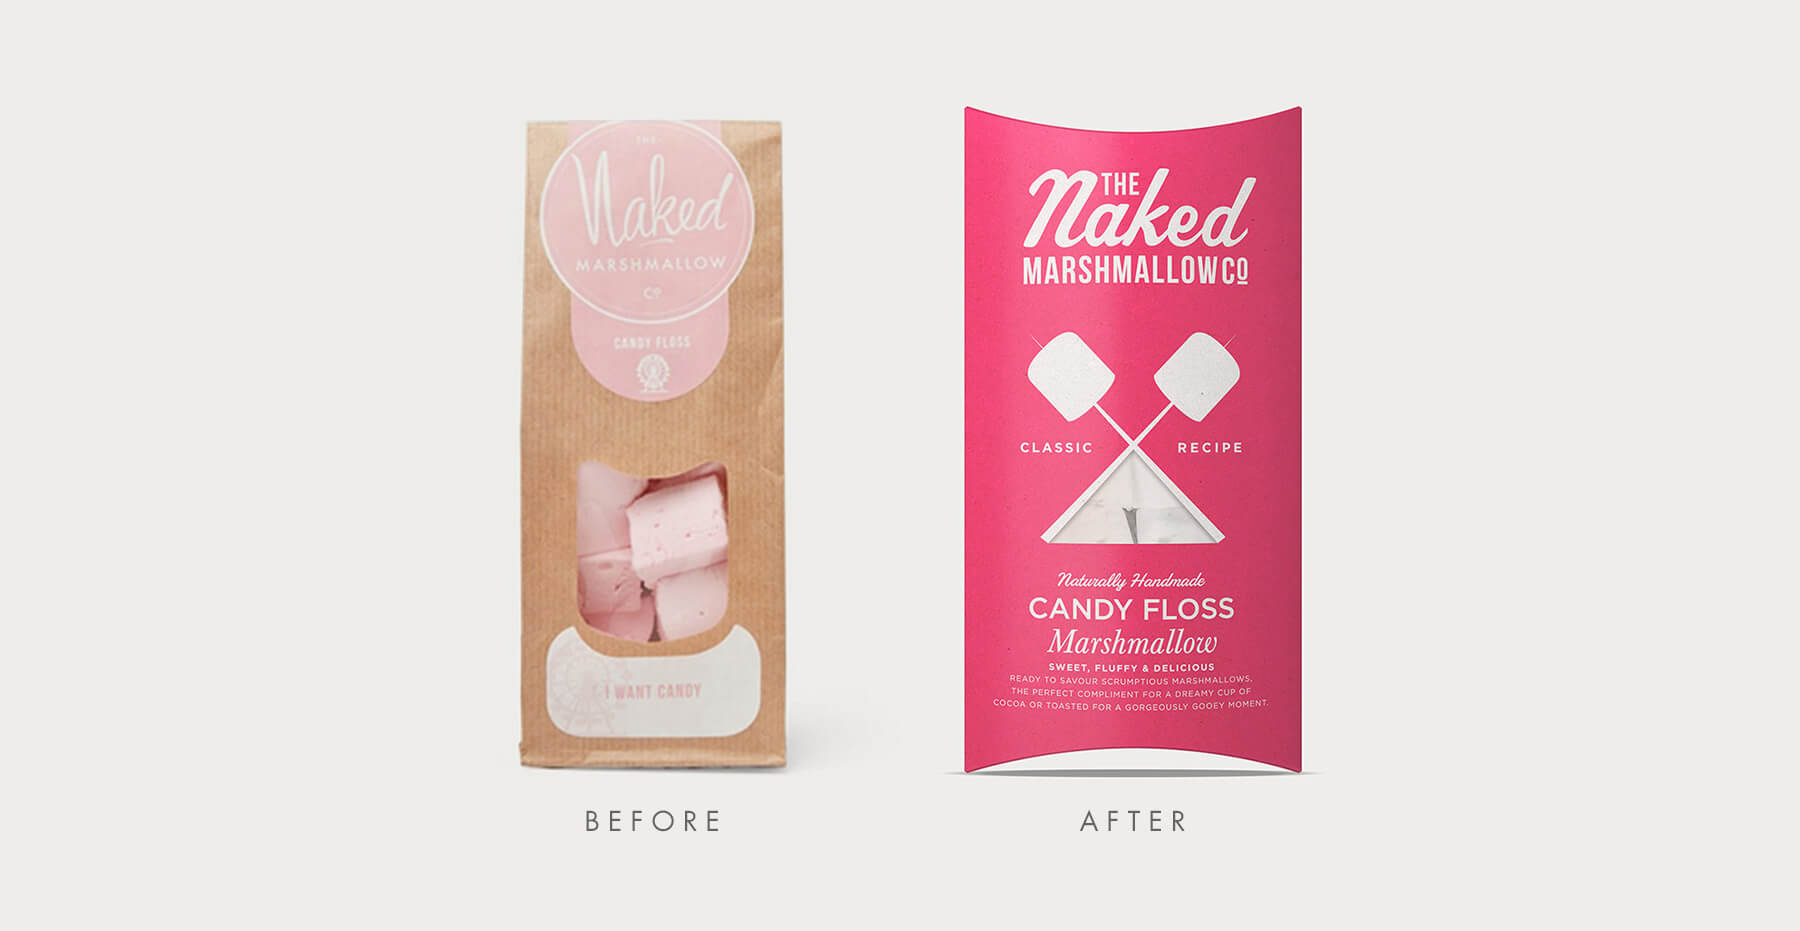 Branding and packaging design for confectionary brand The Naked Marshmallow Co by Design Happy London - Before and after packaging design